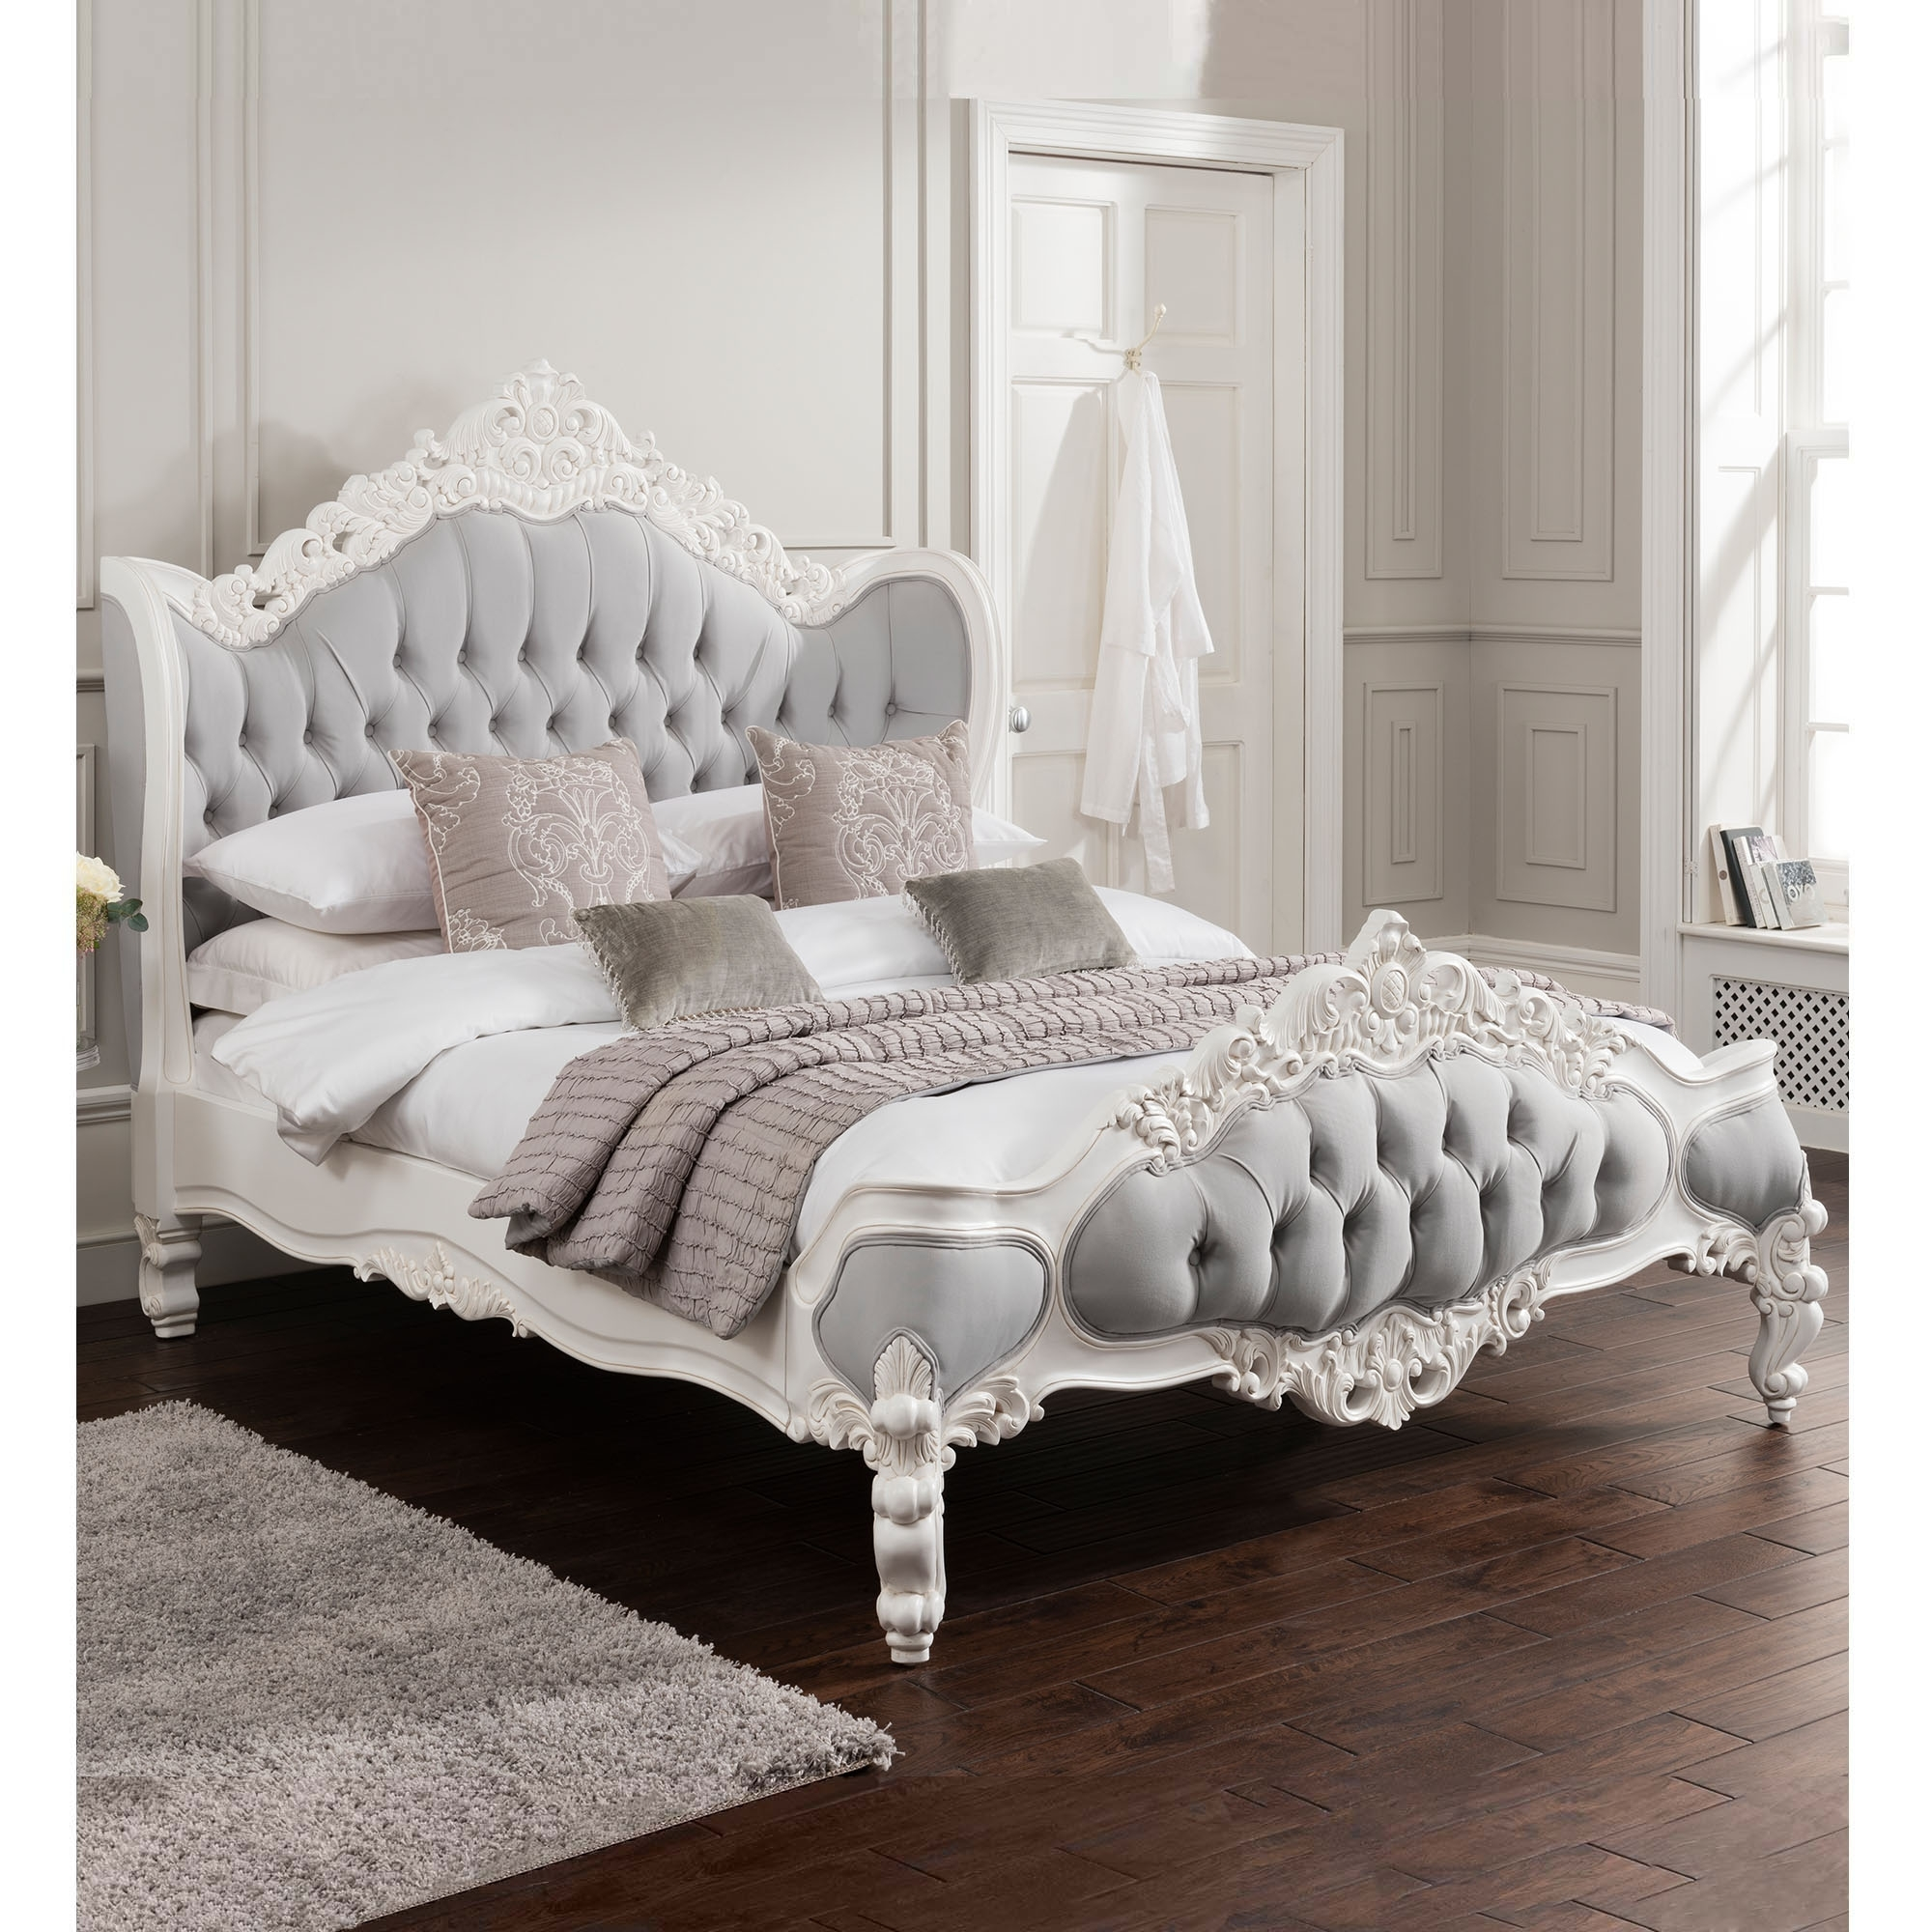 French bedroom furniture antique french style bed shabby chic bedroom furniture french style bedroom  furniture JTSQWIH